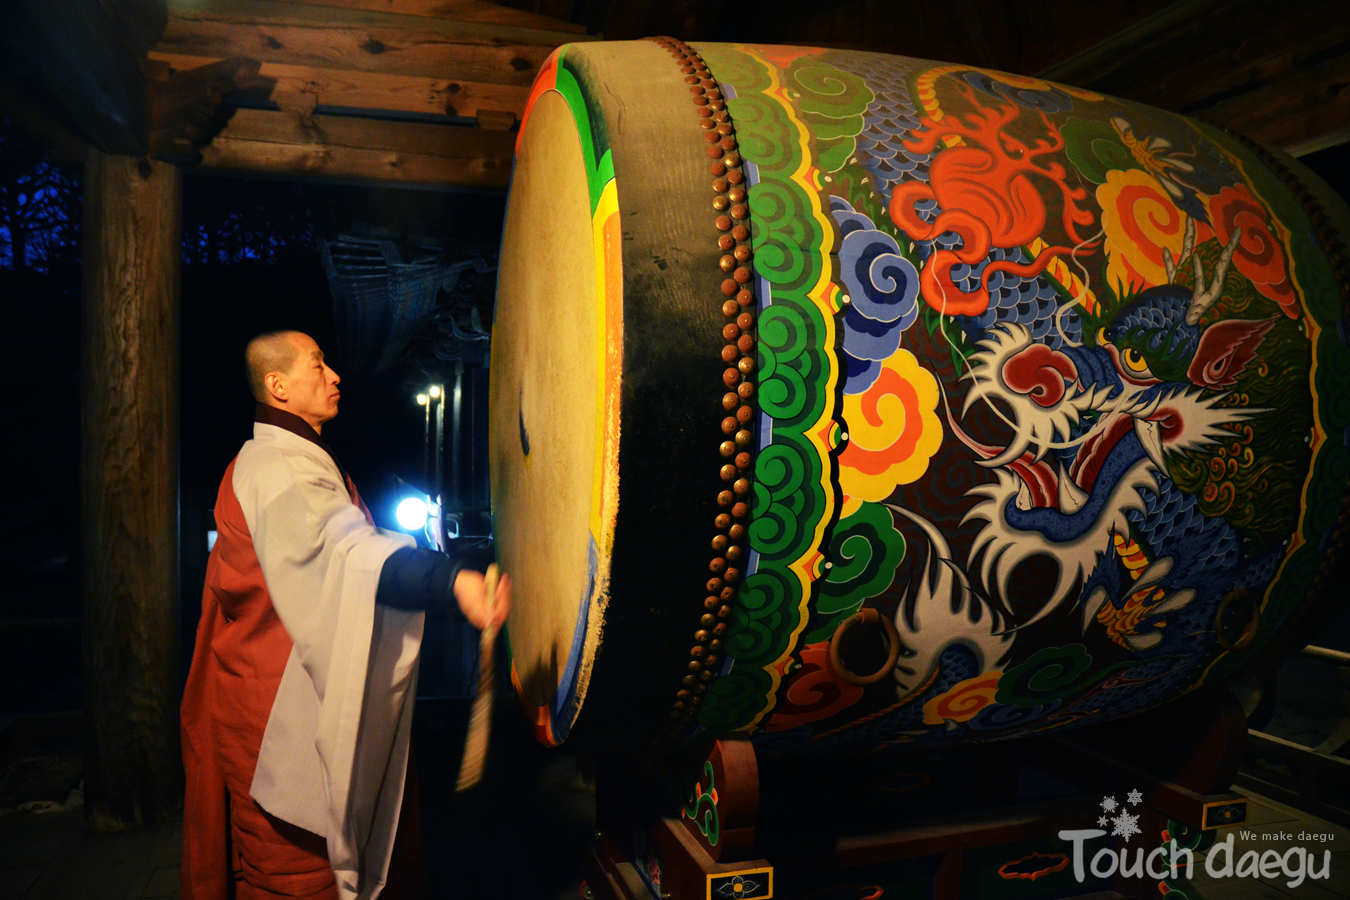 A monk is playing the drum